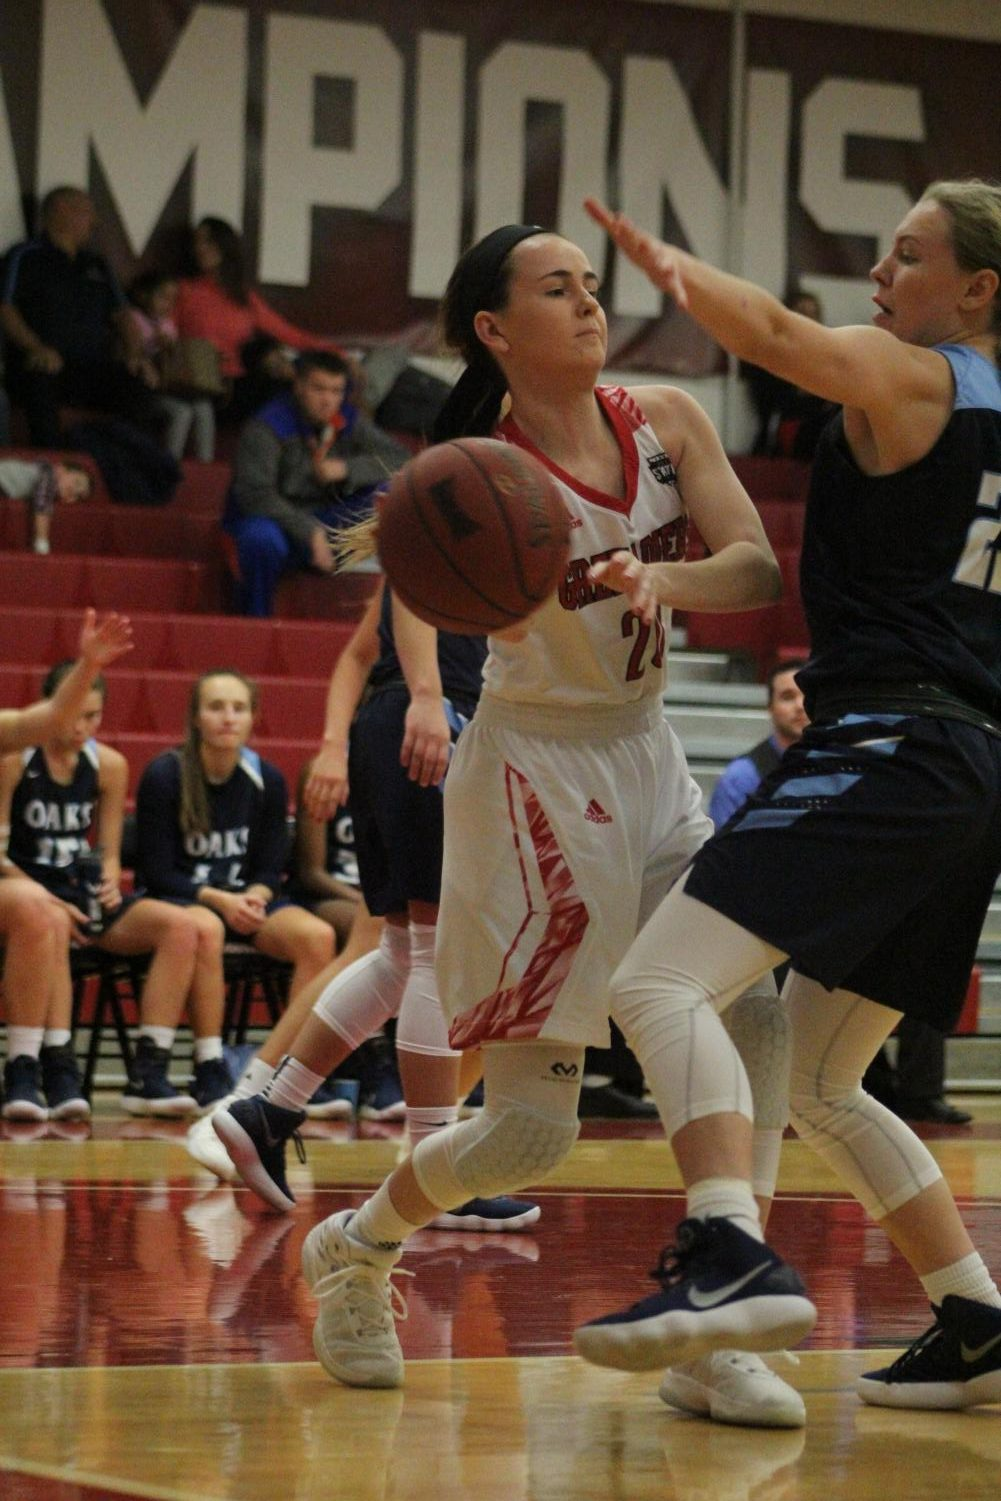 Coach+Farris+wasn%E2%80%99t+the+only+pleased+with+the+women%E2%80%99s+basketball+team+on+Saturday.+Steve+Sandefur%2C+the+father+of+player+Ariana+Sandefur%2C+pictured%2C+said+the+team+seems+to+work+well+together.+